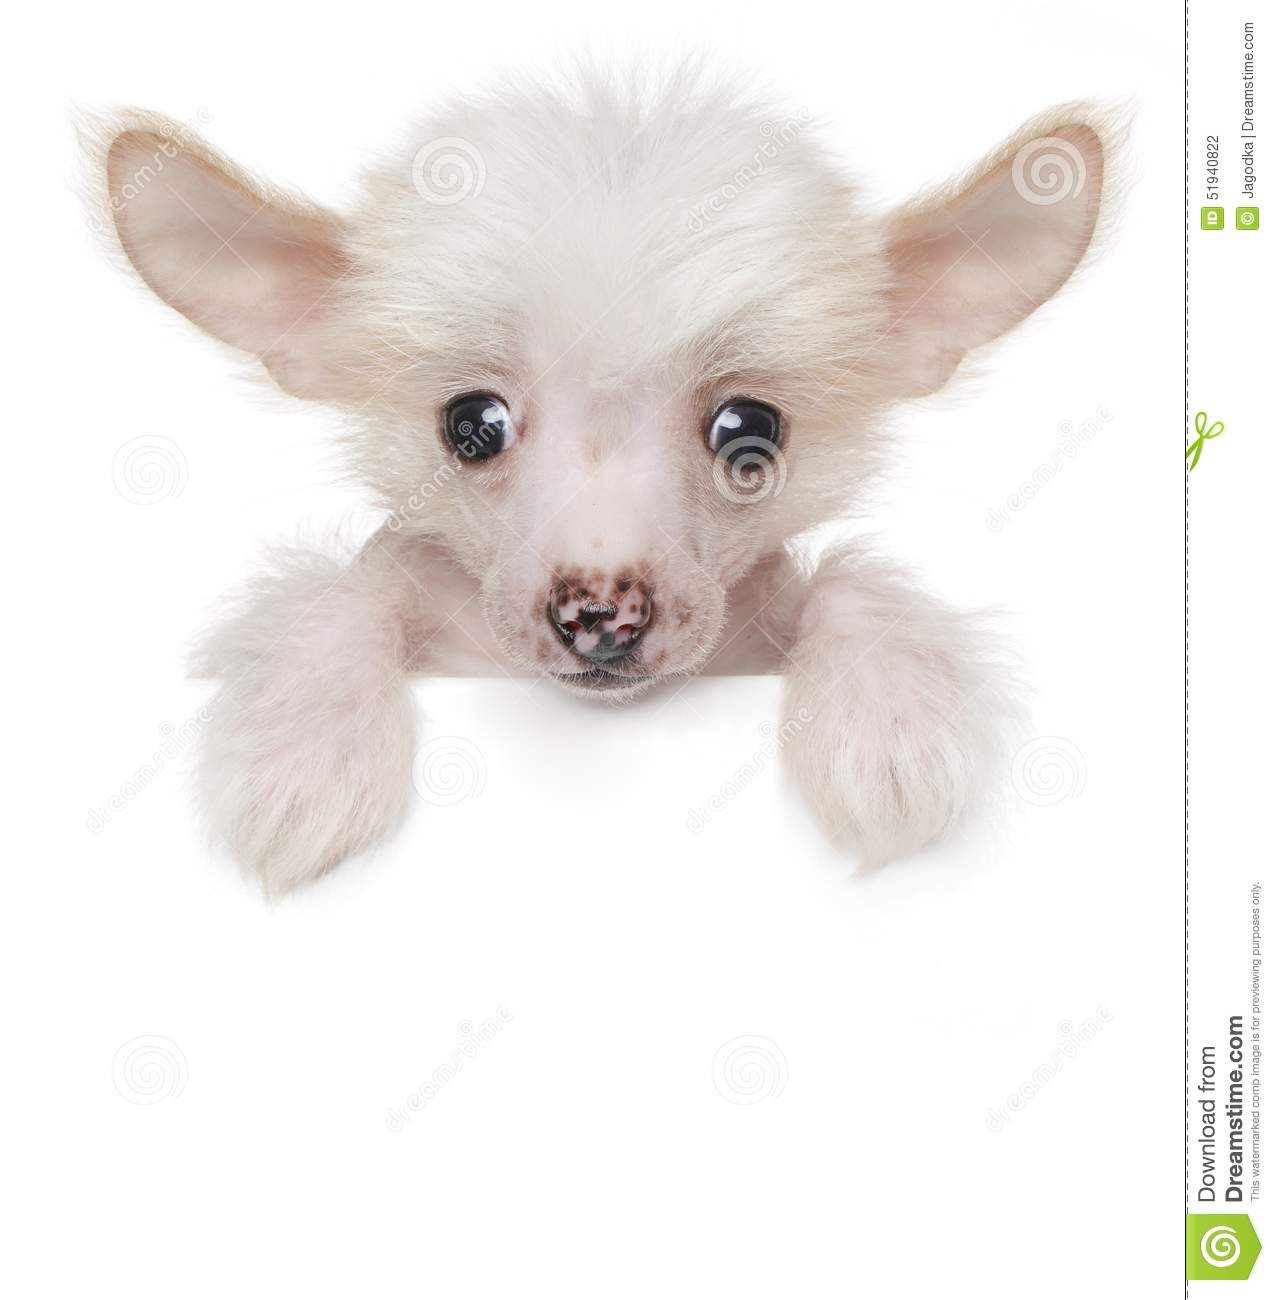 Funny Cute Chinese Crested Puppy Above White Banner Stock Photo ...